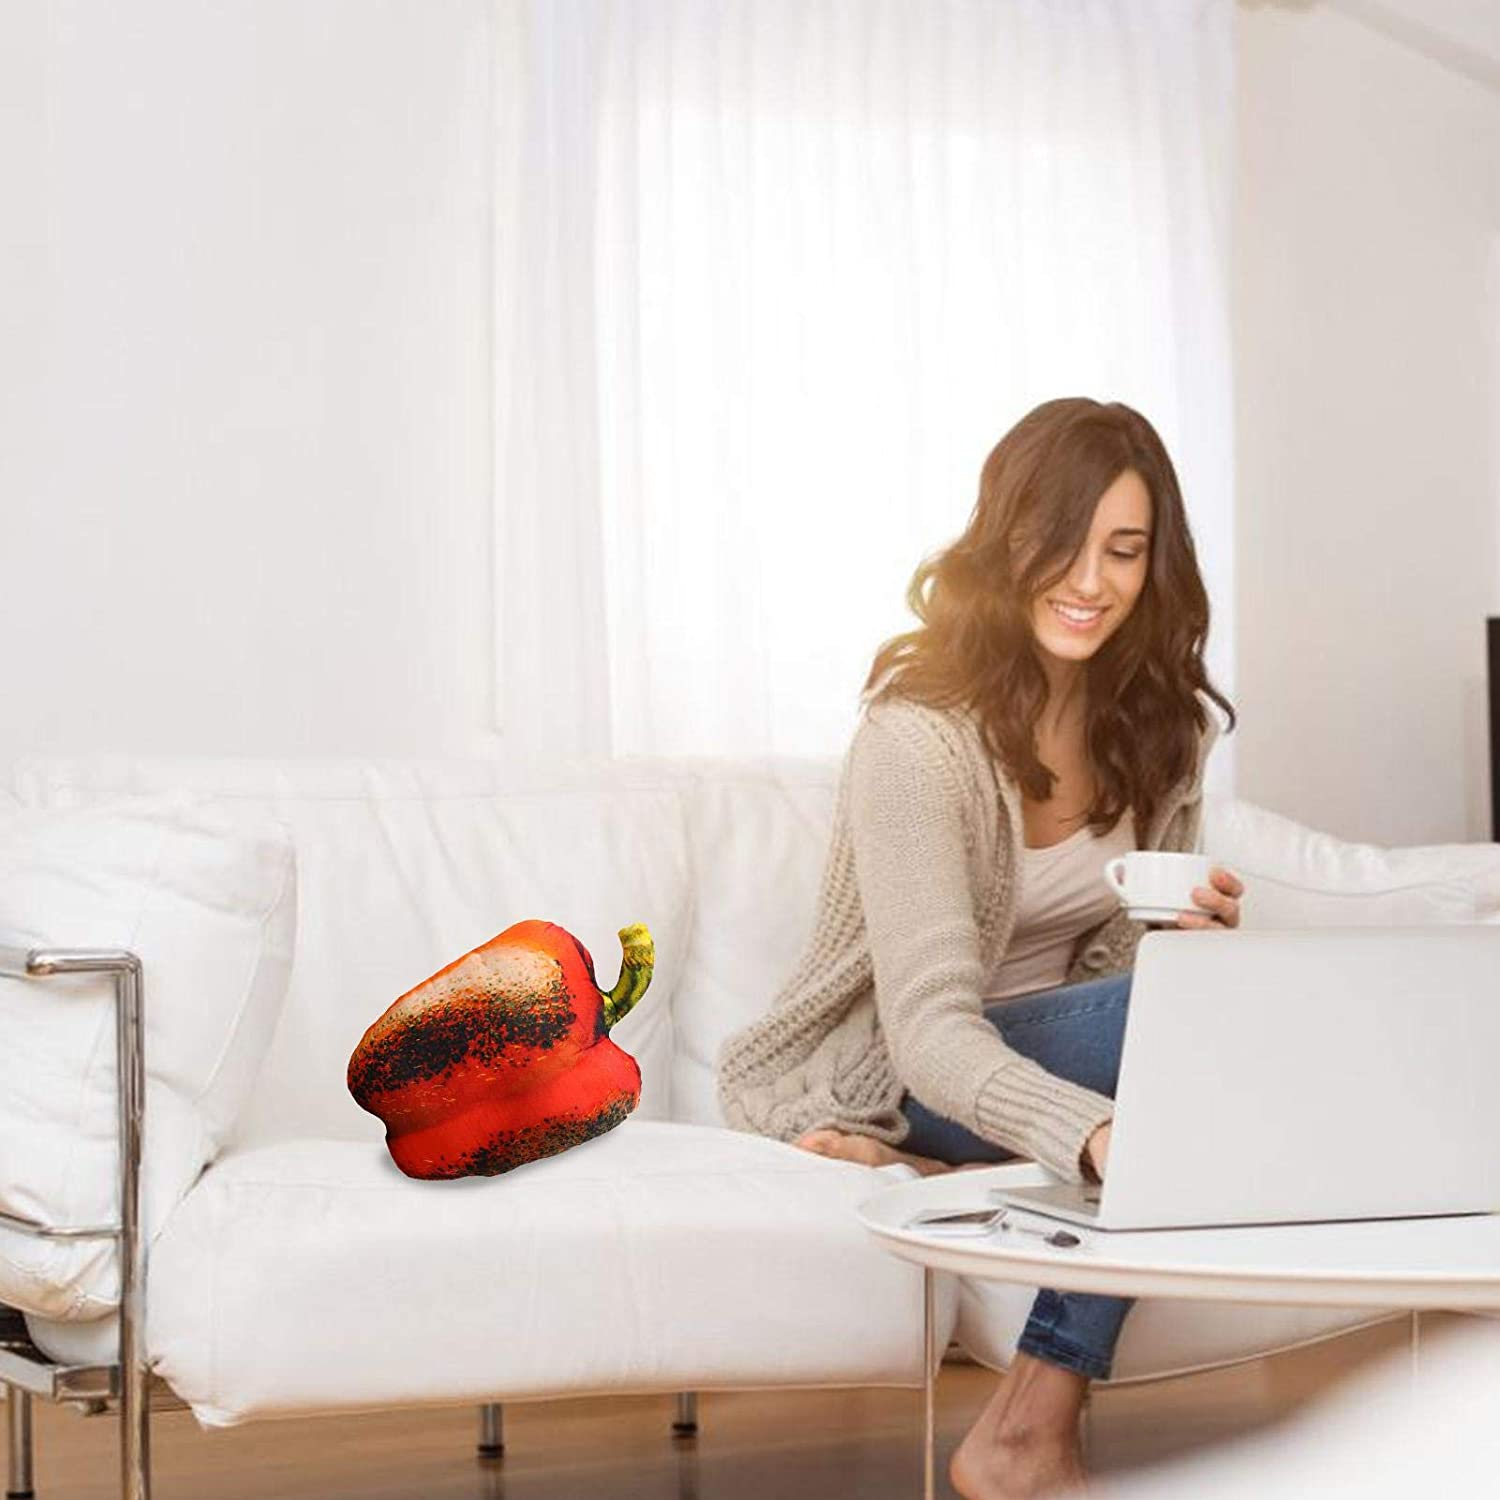 PP Cotton Innovative Lumbar Pillows Soft And Comfortable 20cm Simulation Roasted Red Pepper Pillow